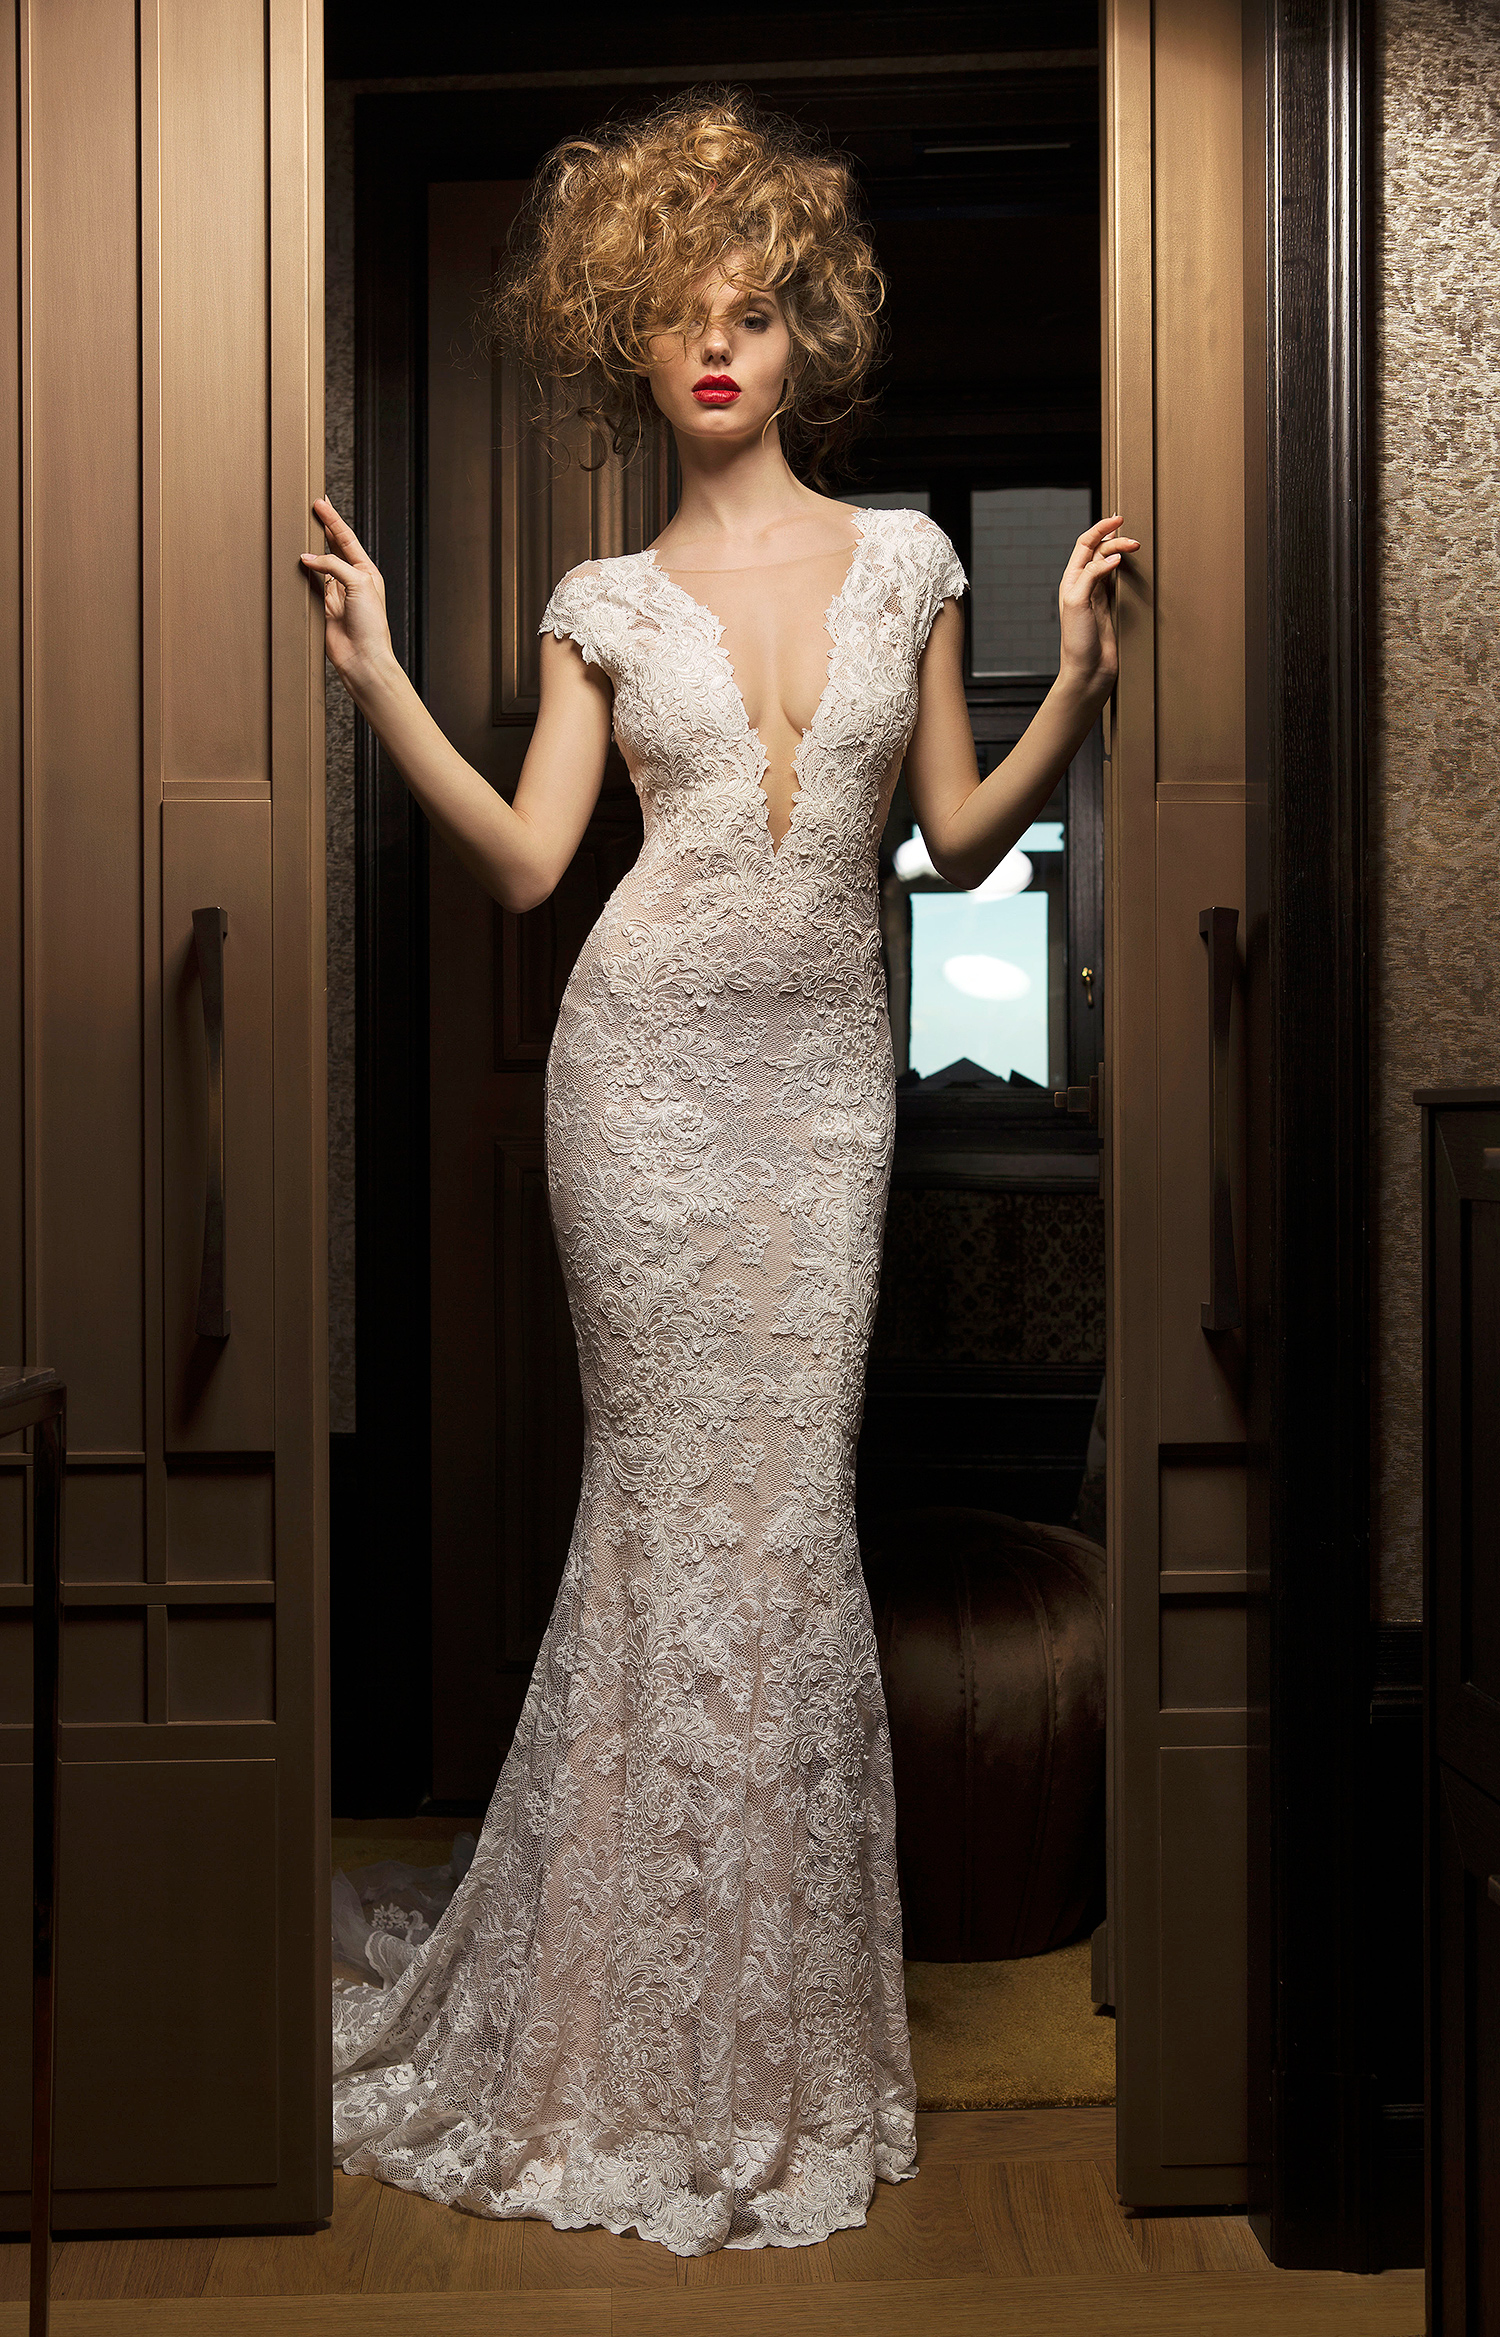 olvi wedding dress spring 2019 plunging neck cap-sleeve